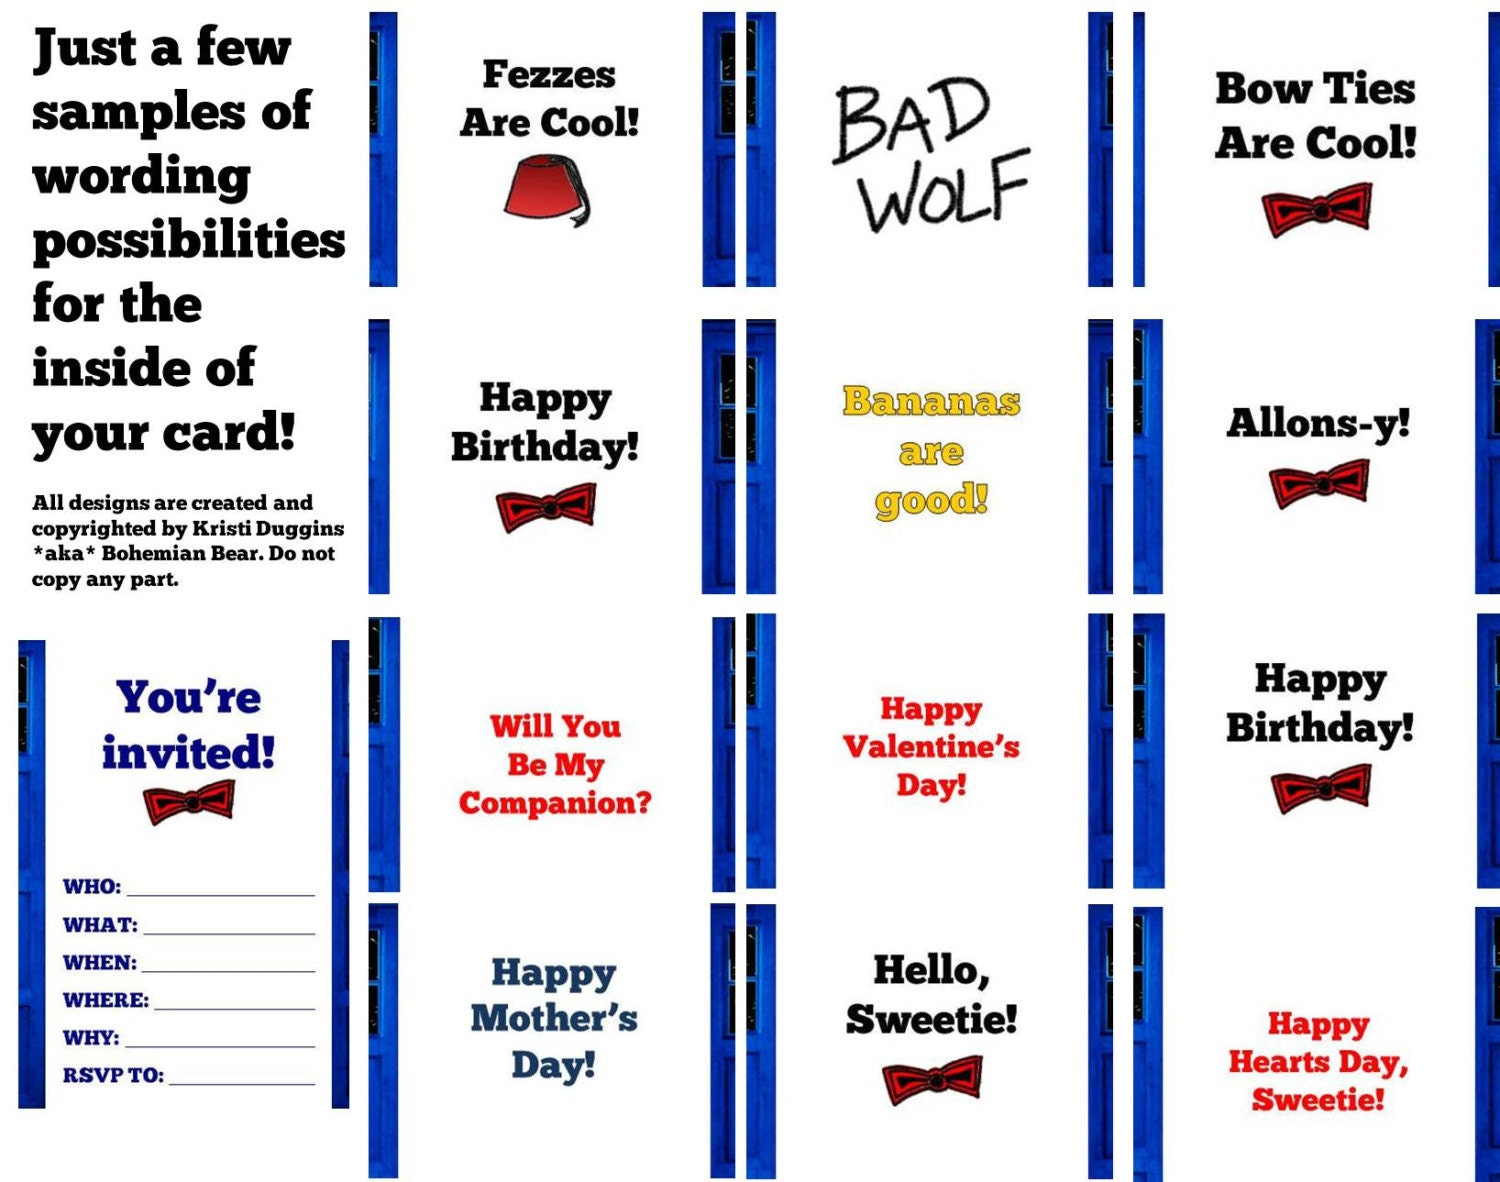 Doctor Who Inspired TARDIS Greeting Card, Blue Police Box by Bohemian Bear, Happy Mother's or Father's Day, Easter